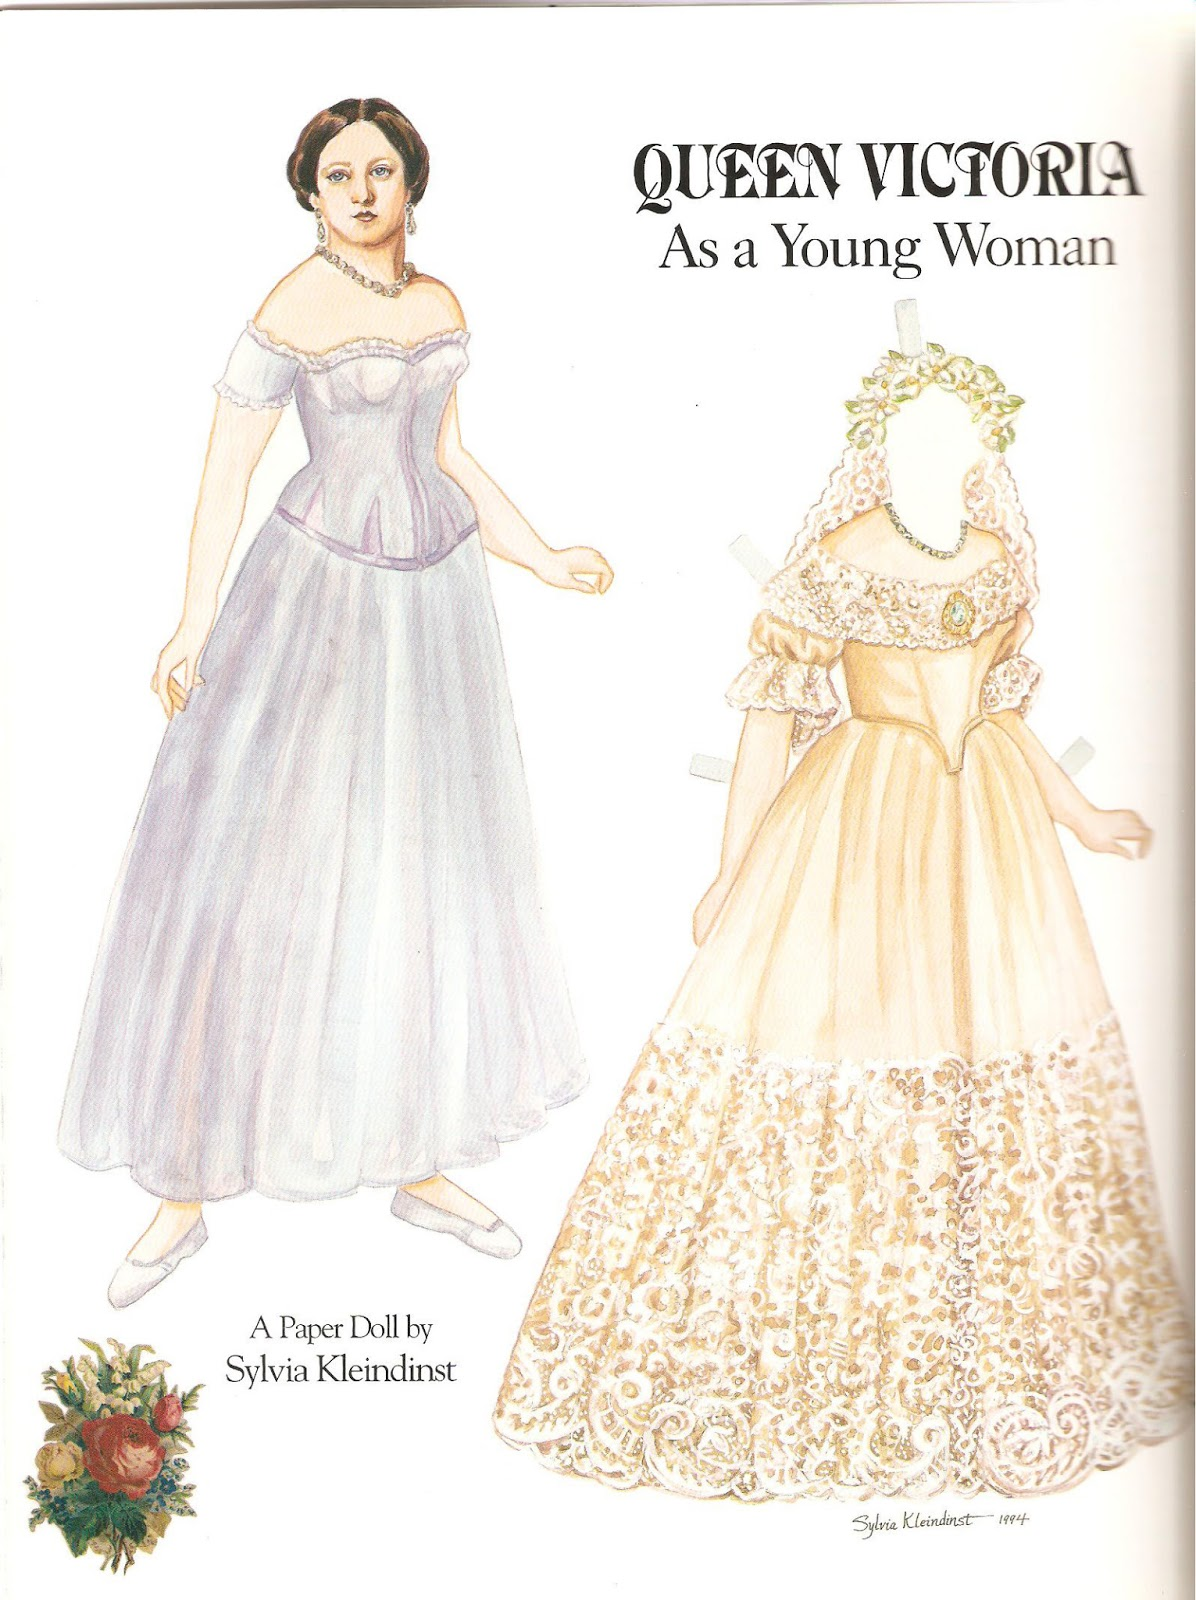 paper dolls magazine History of paper dolls in america beginning in the 1850s.